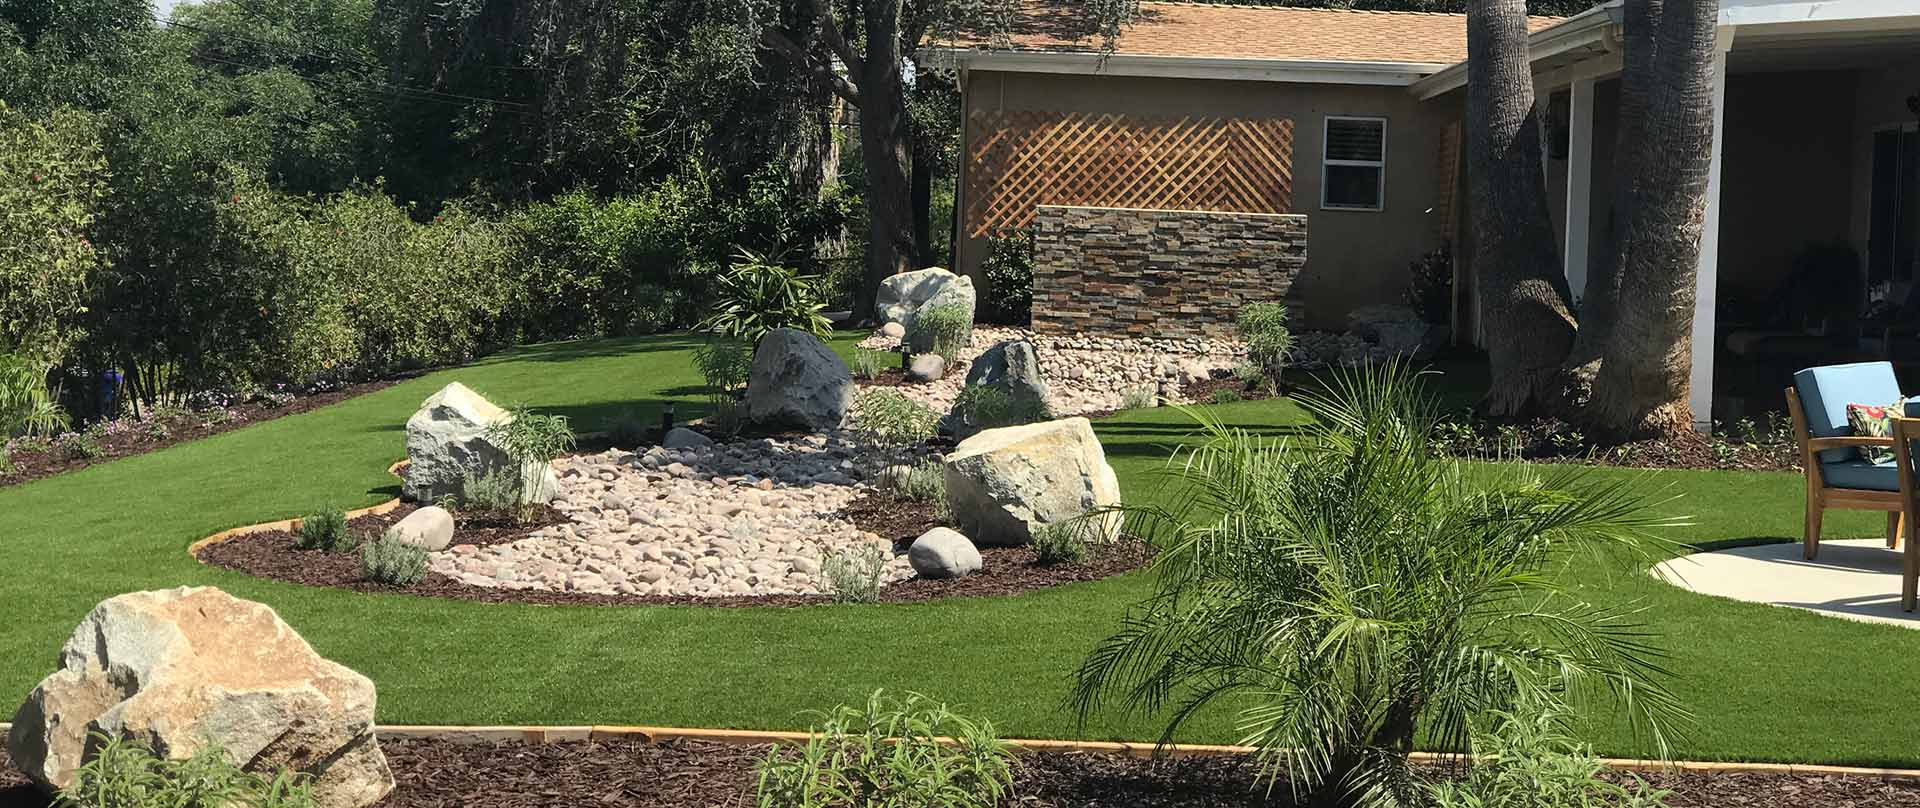 Project Case Study: Artificial Turf & Custom Water Feature in Escondido, CA